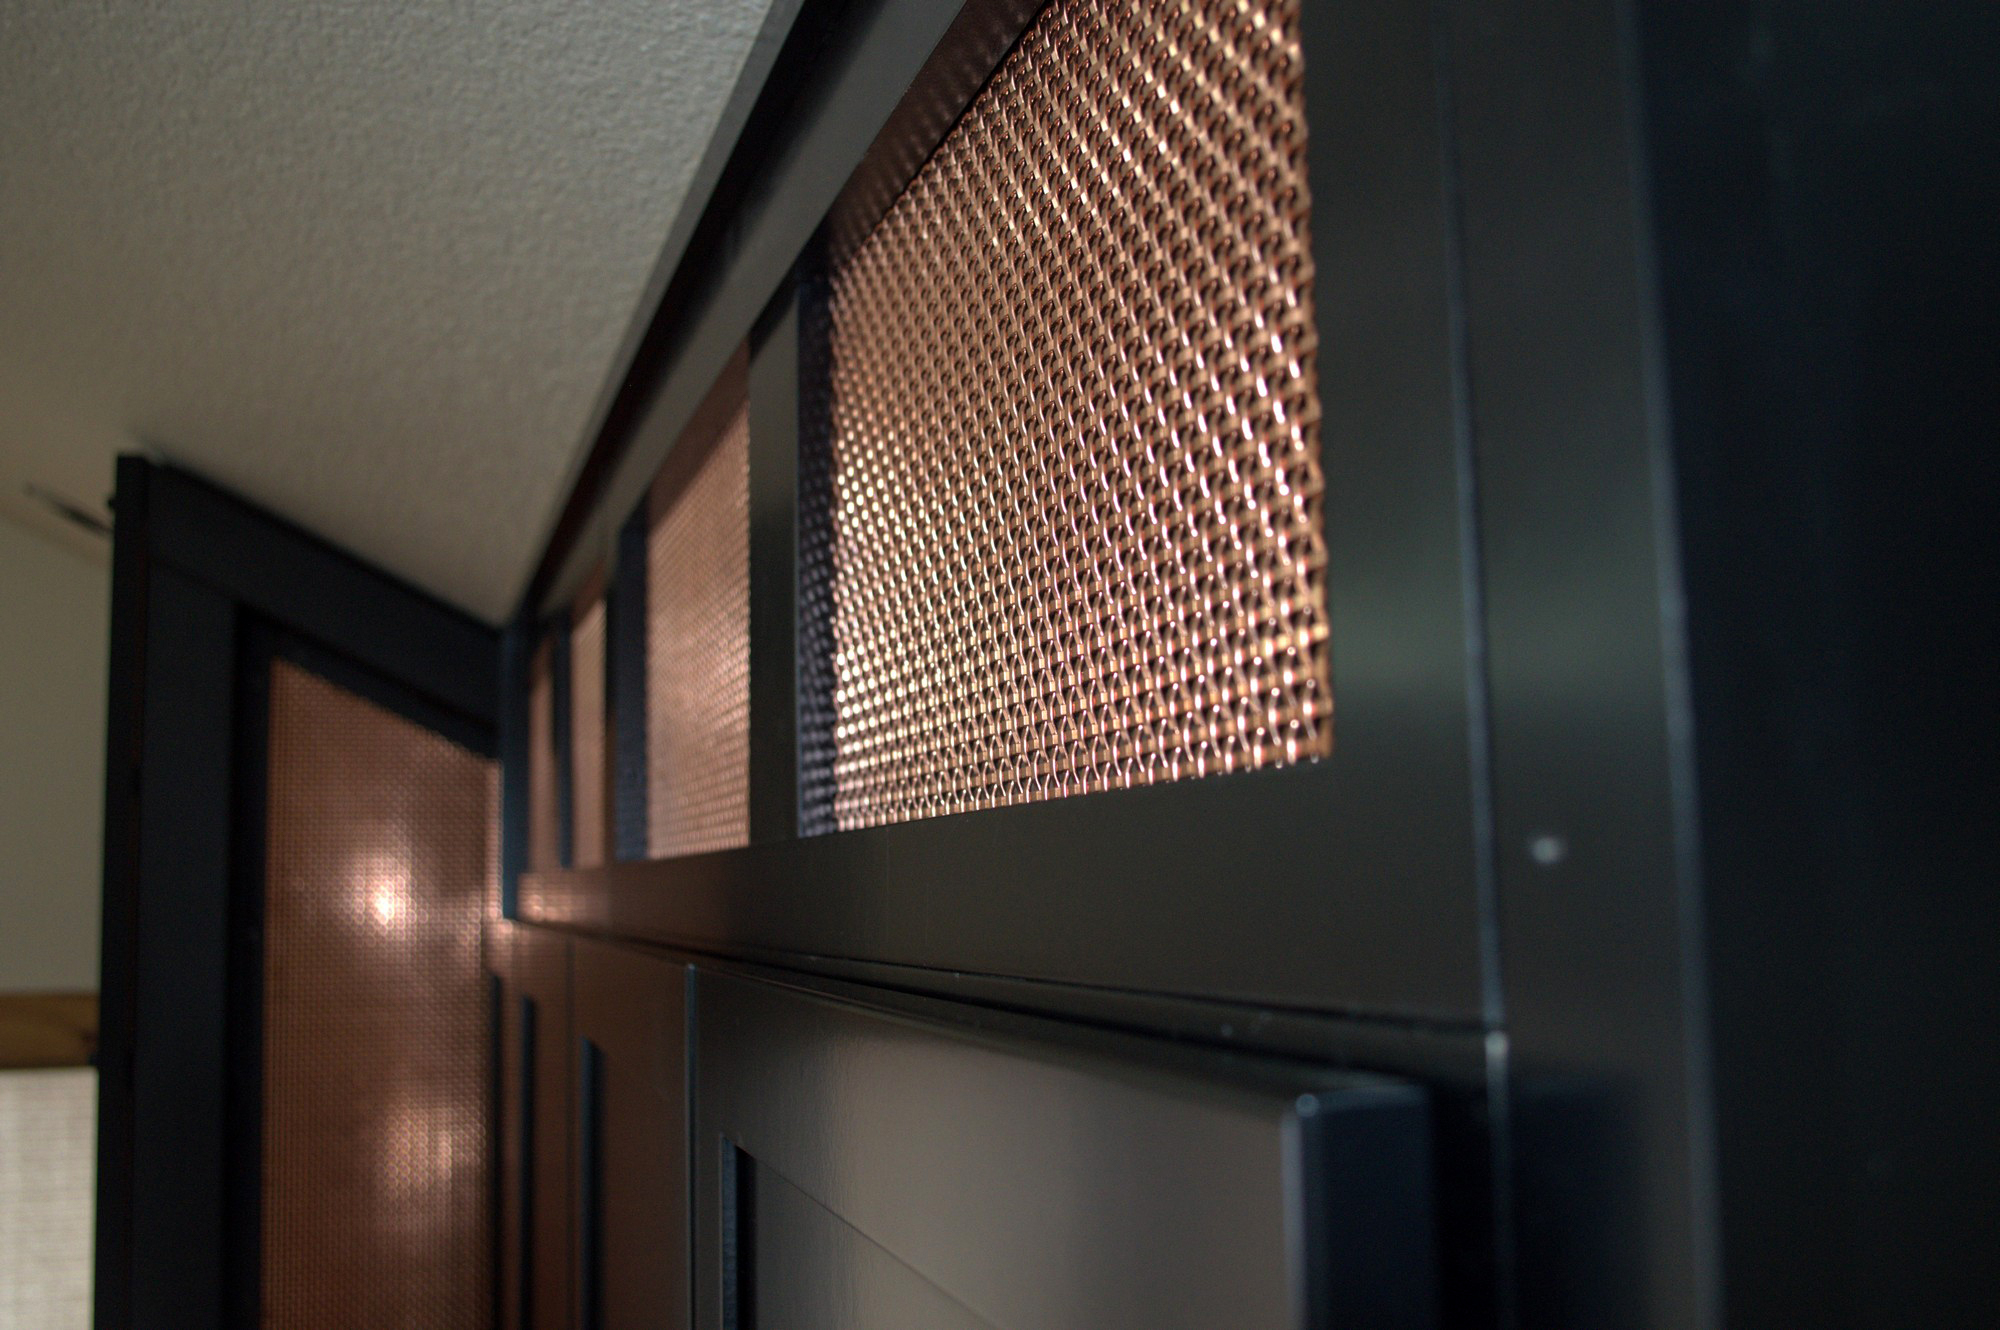 The flats of the crimped wire give this architectural wire mesh a reflective surface.